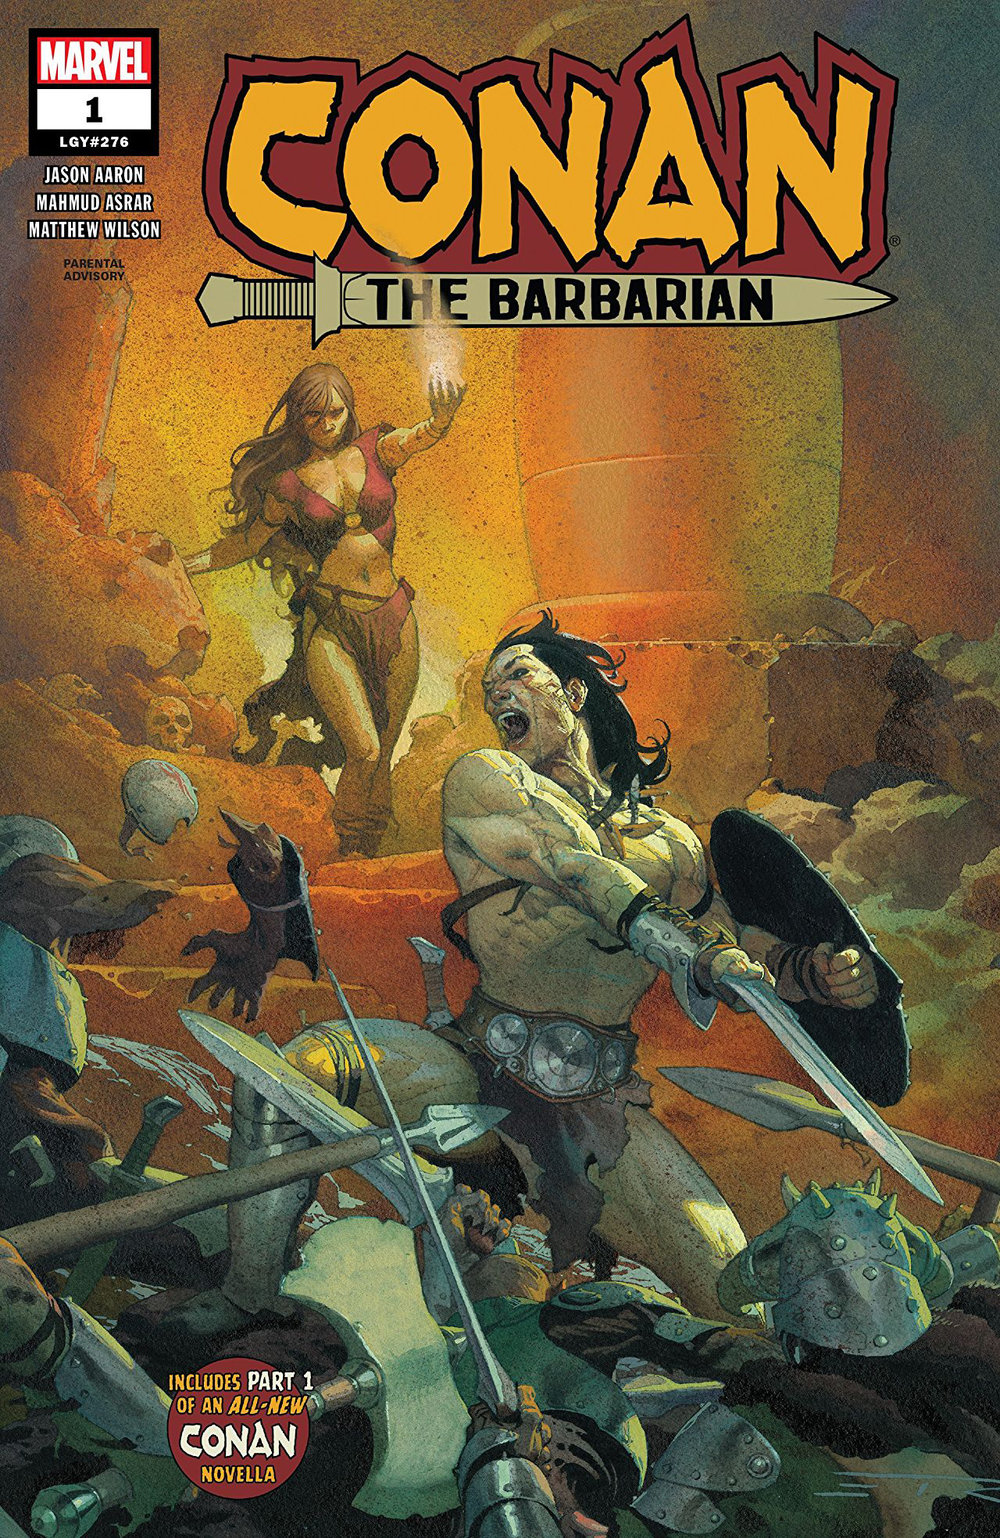 Conan the Barbarian #1.jpg